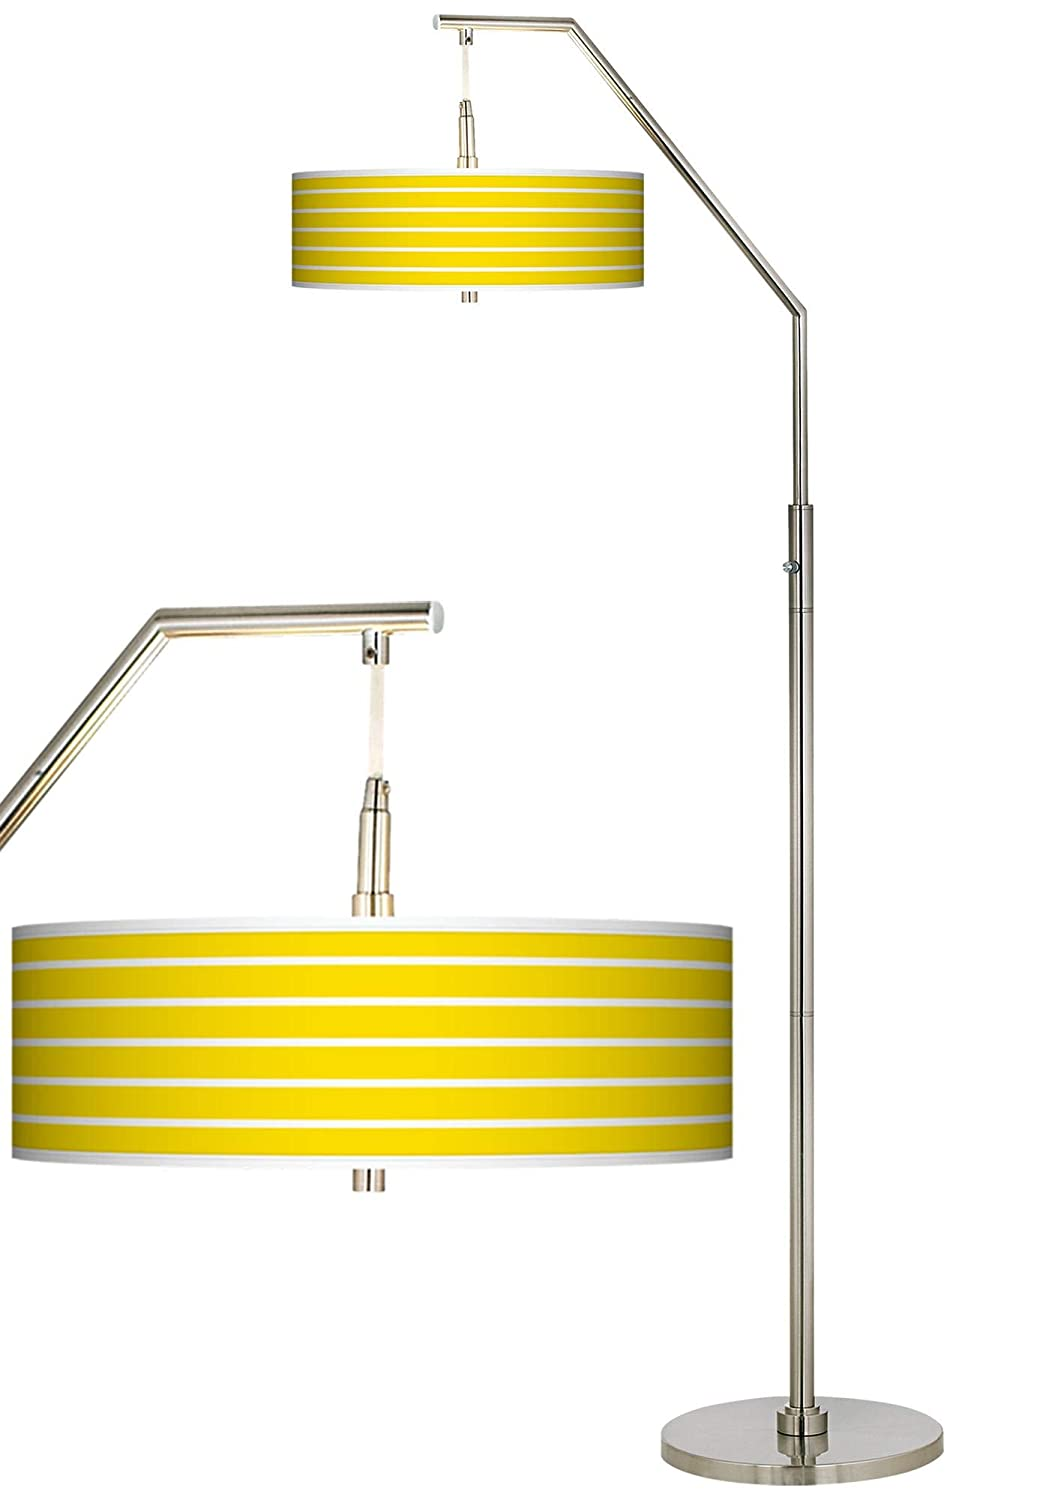 Modern Arc Floor Lamp Brushed Nickel Vivid Yellow Stripes Pattern Giclee Drum Shade for Living Room Reading Bedroom – Giclee Glow